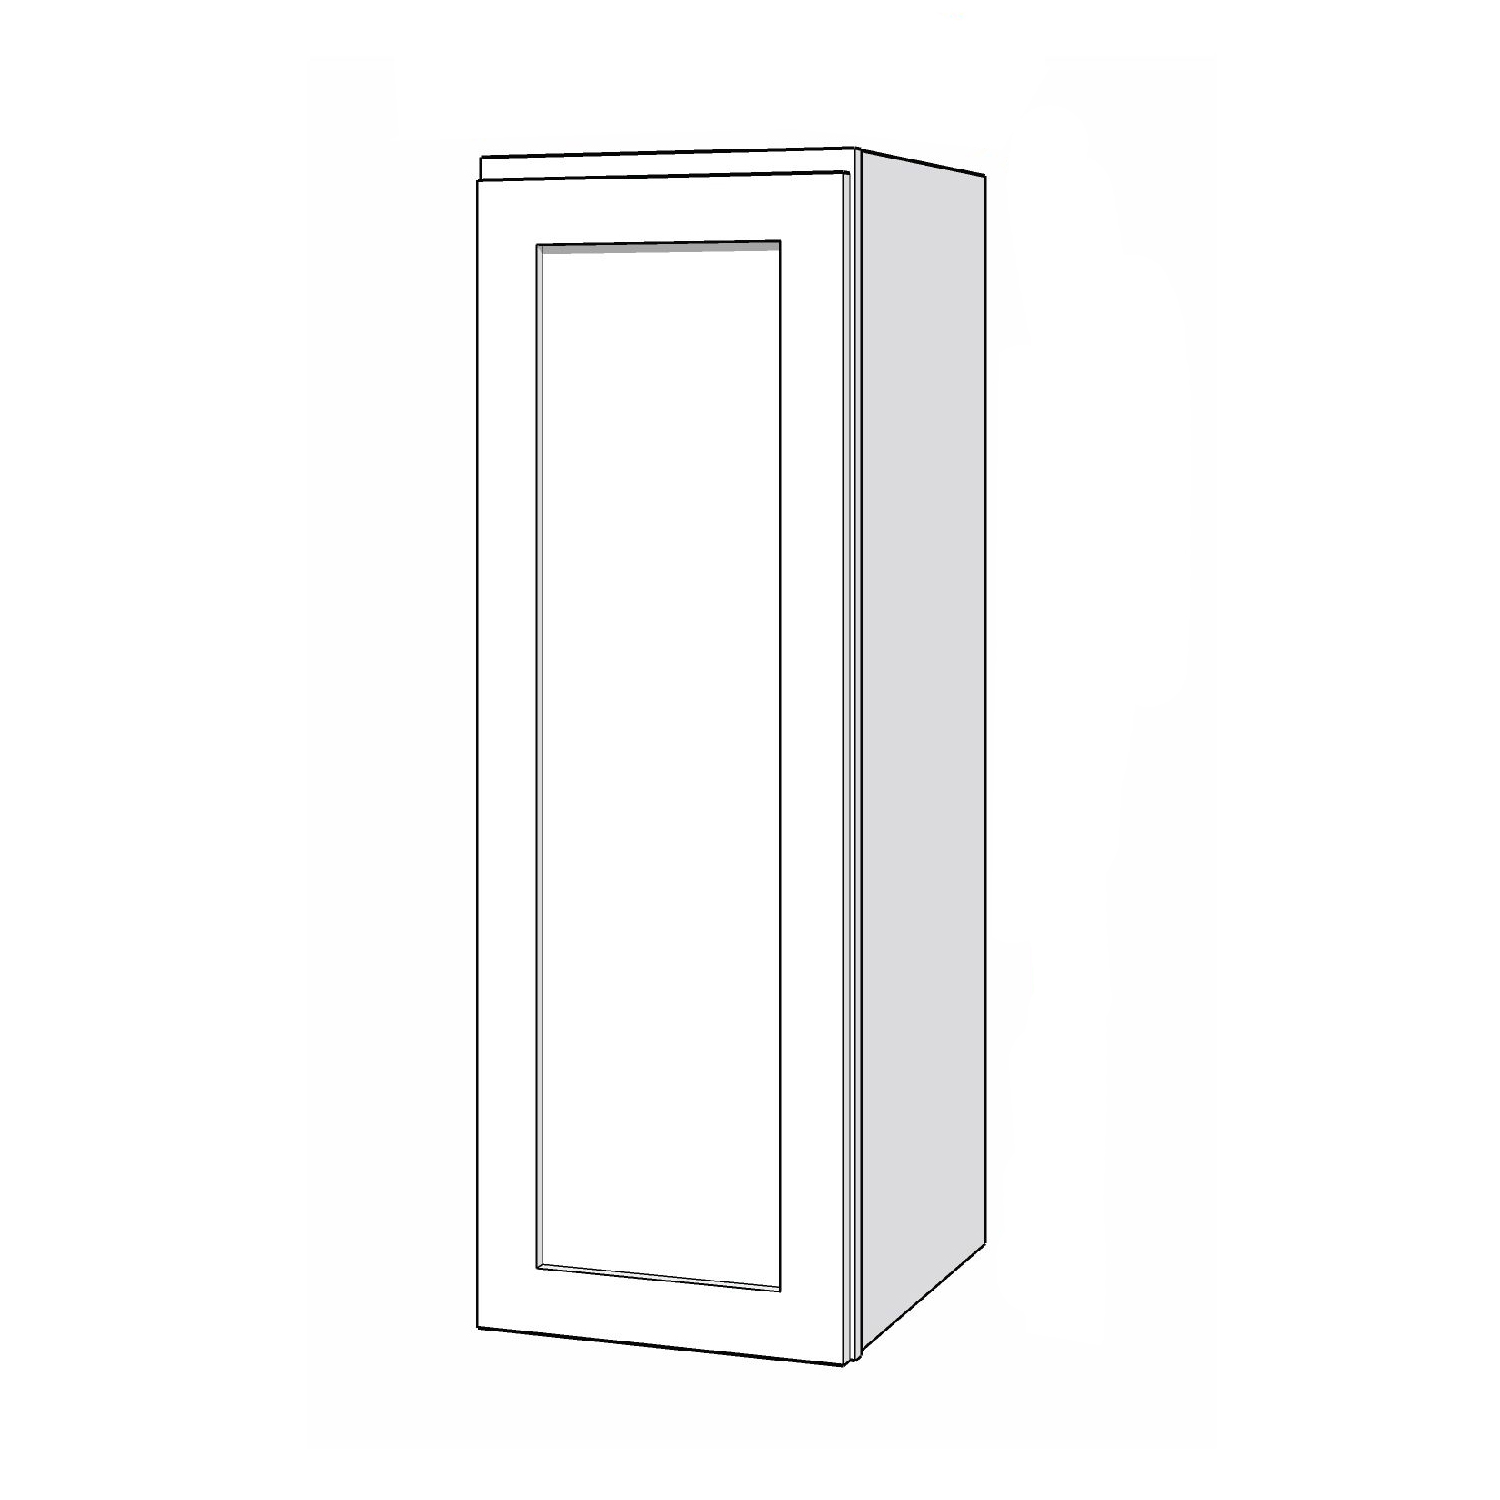 Wall Cabinet - 12in. x 36in. - White